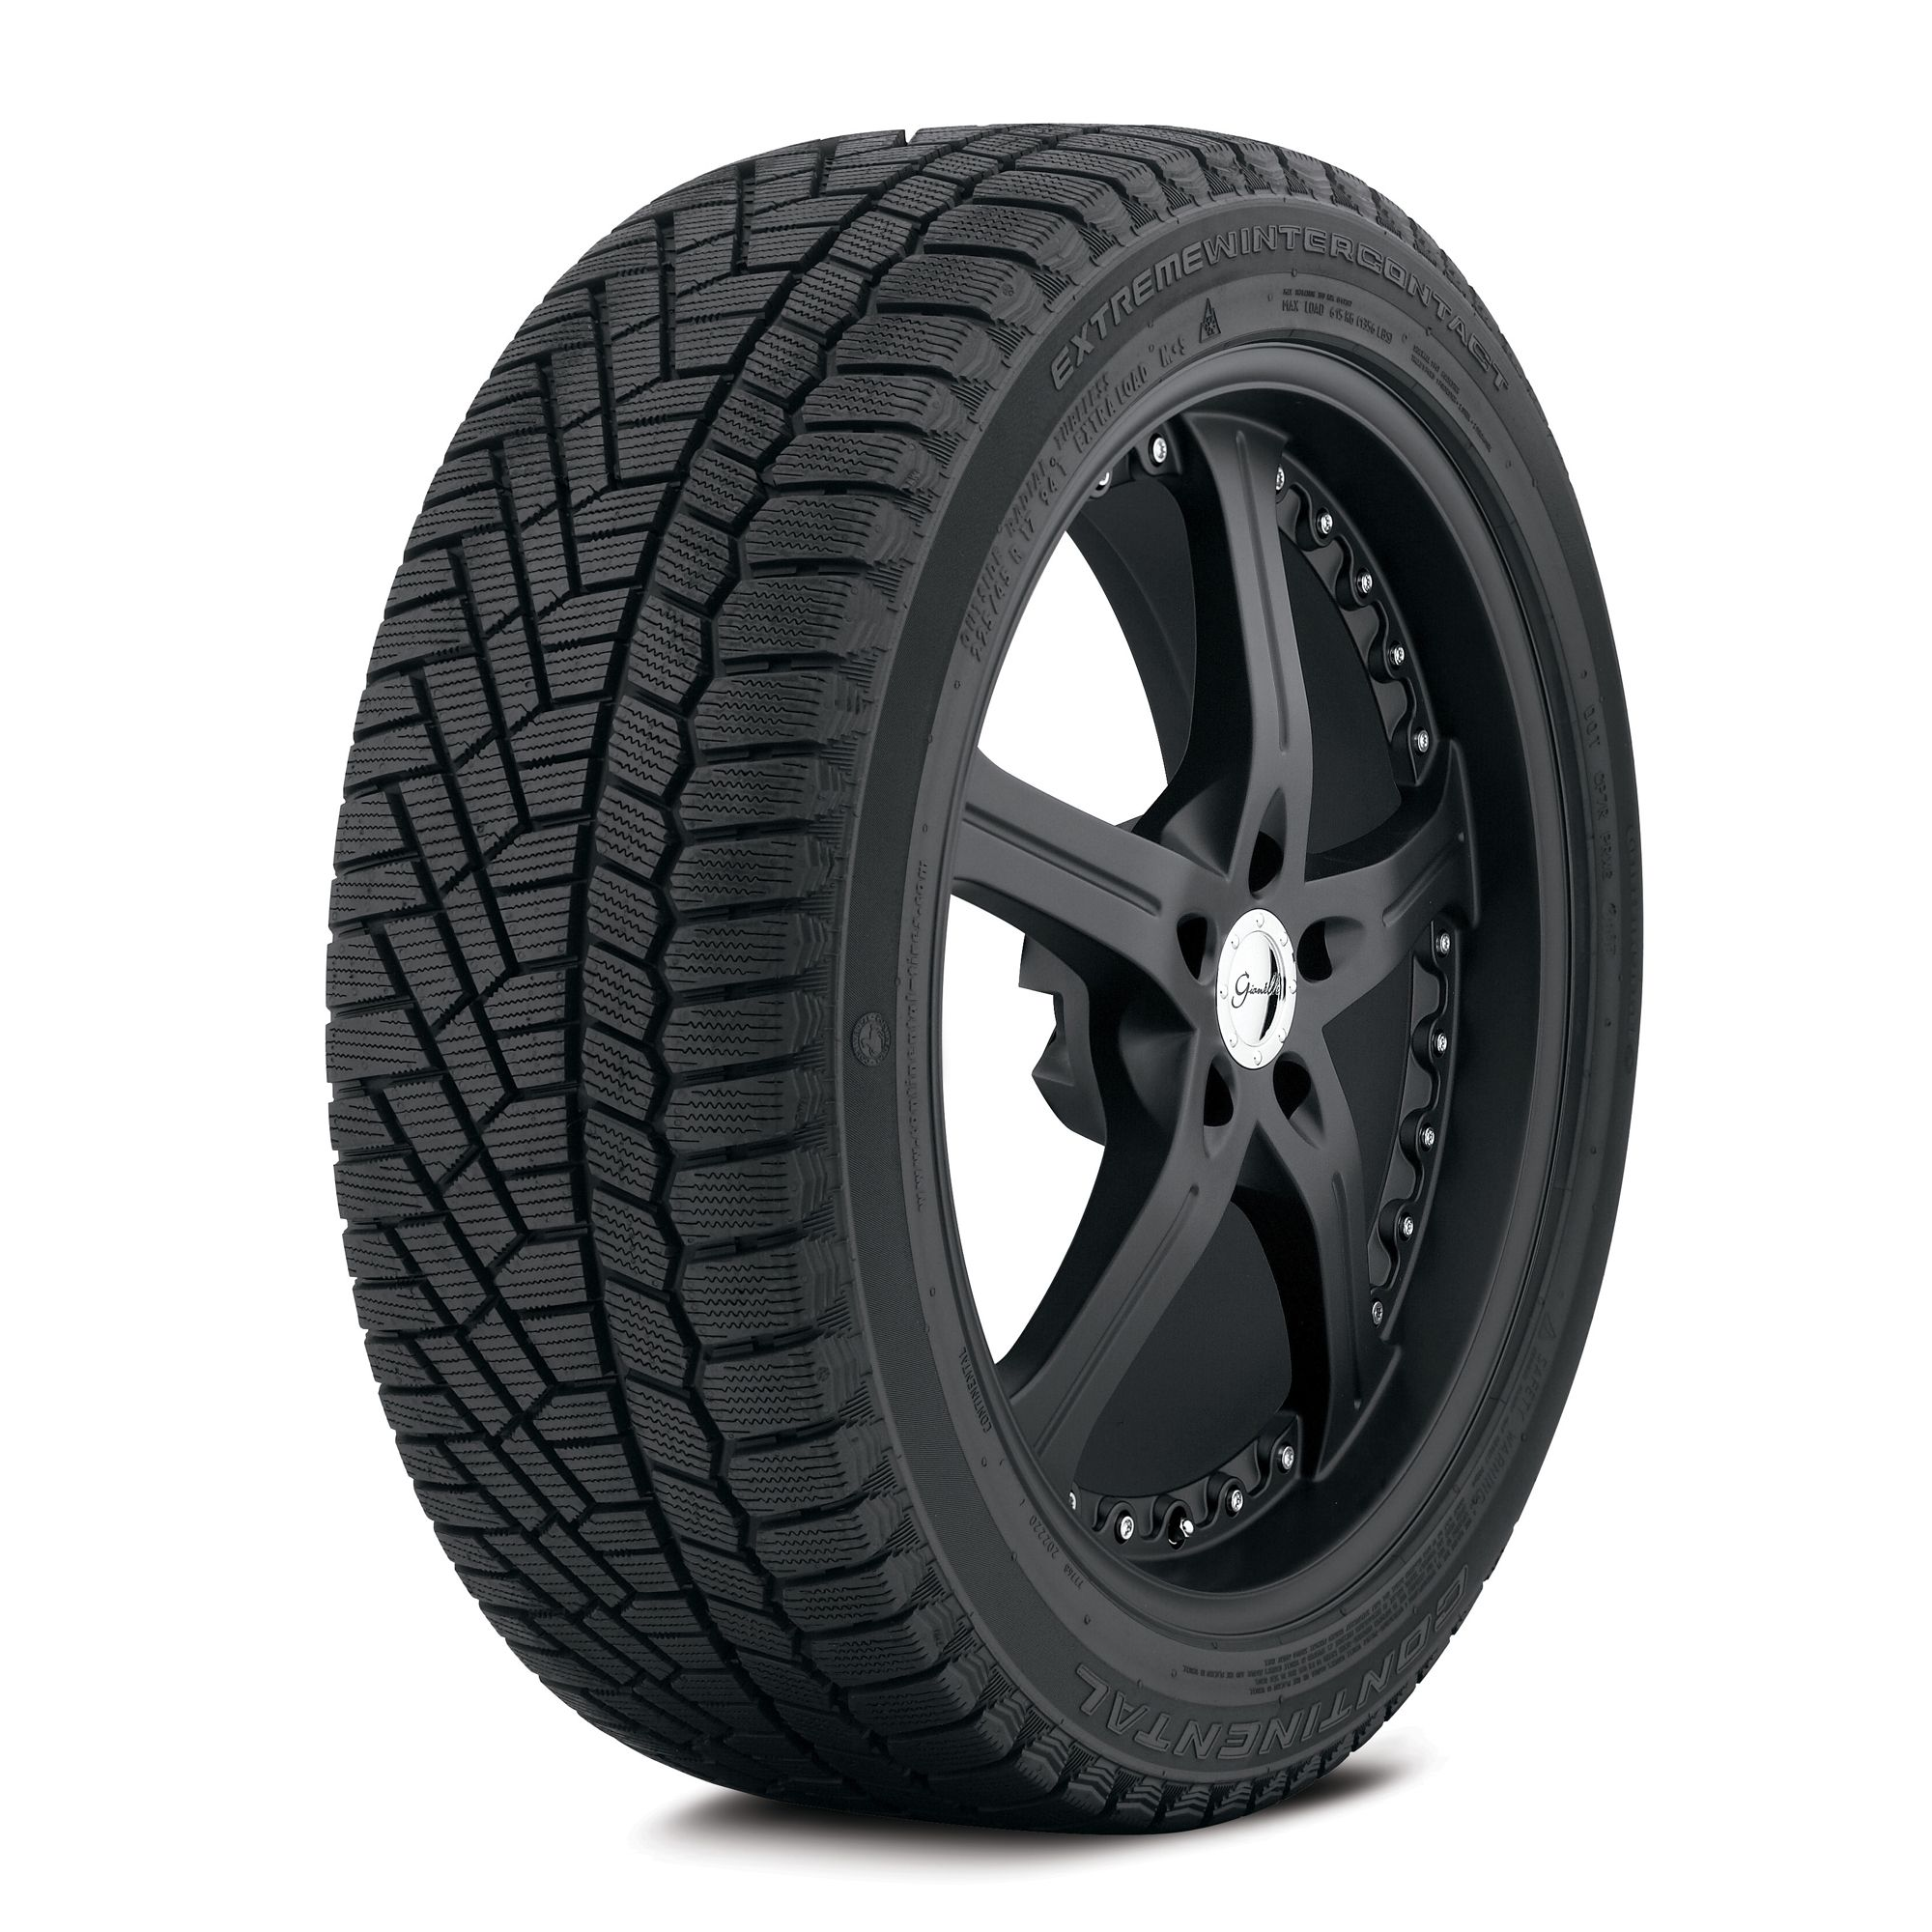 Continental  EXTREME WINTER CONTACT TIRE - 215/55R16 97T BW